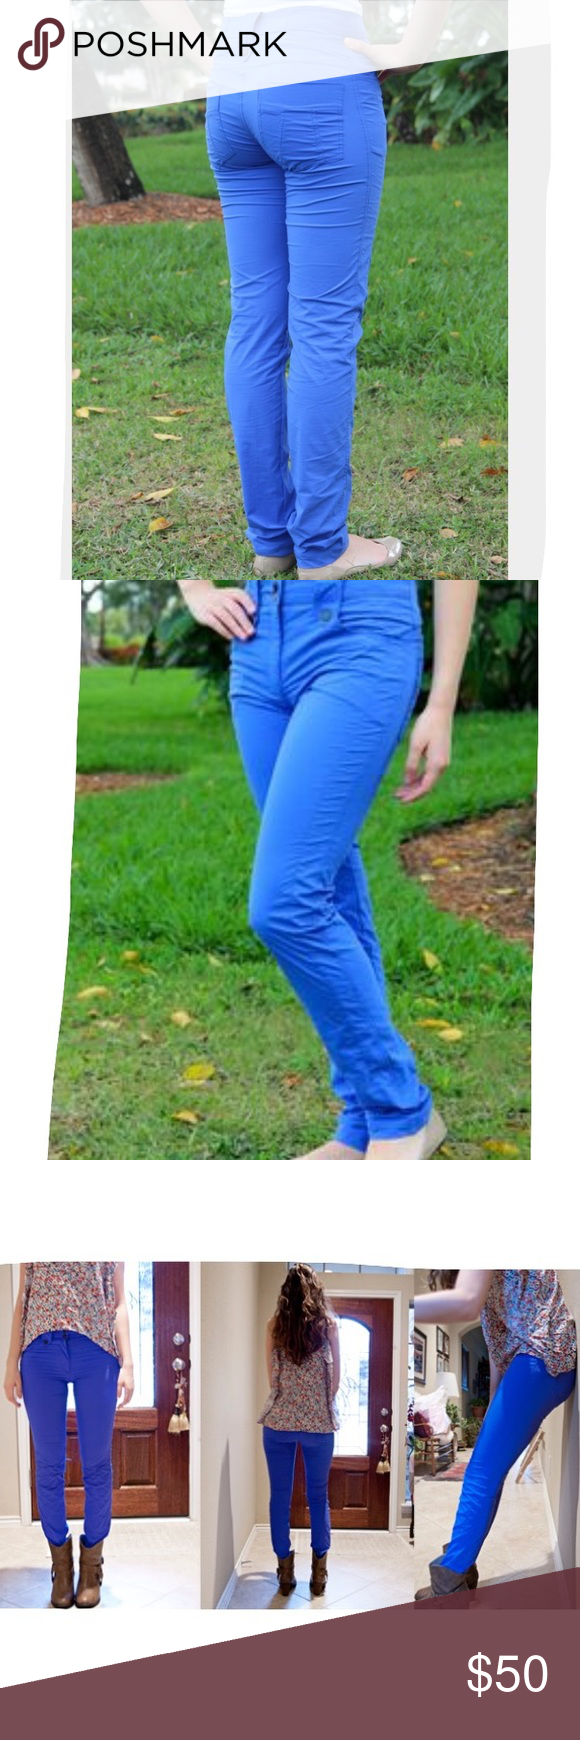 Anatomie Skylar Pants XL Electric Blue Anatomie is known for THE ...